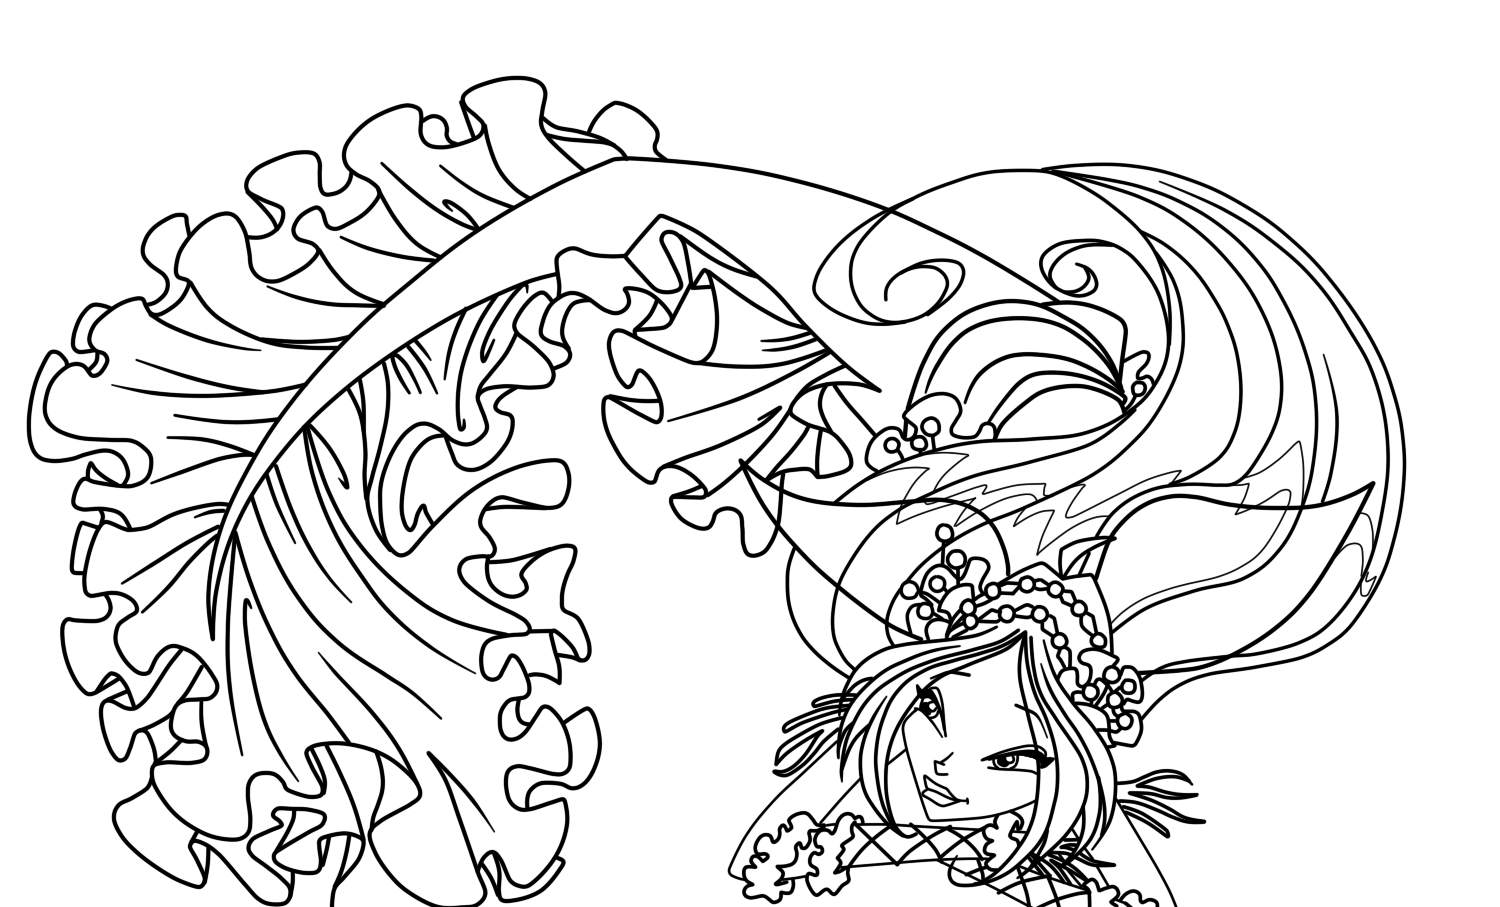 Winx mermaid coloring pages to print and download for free for Winx coloring pages printable